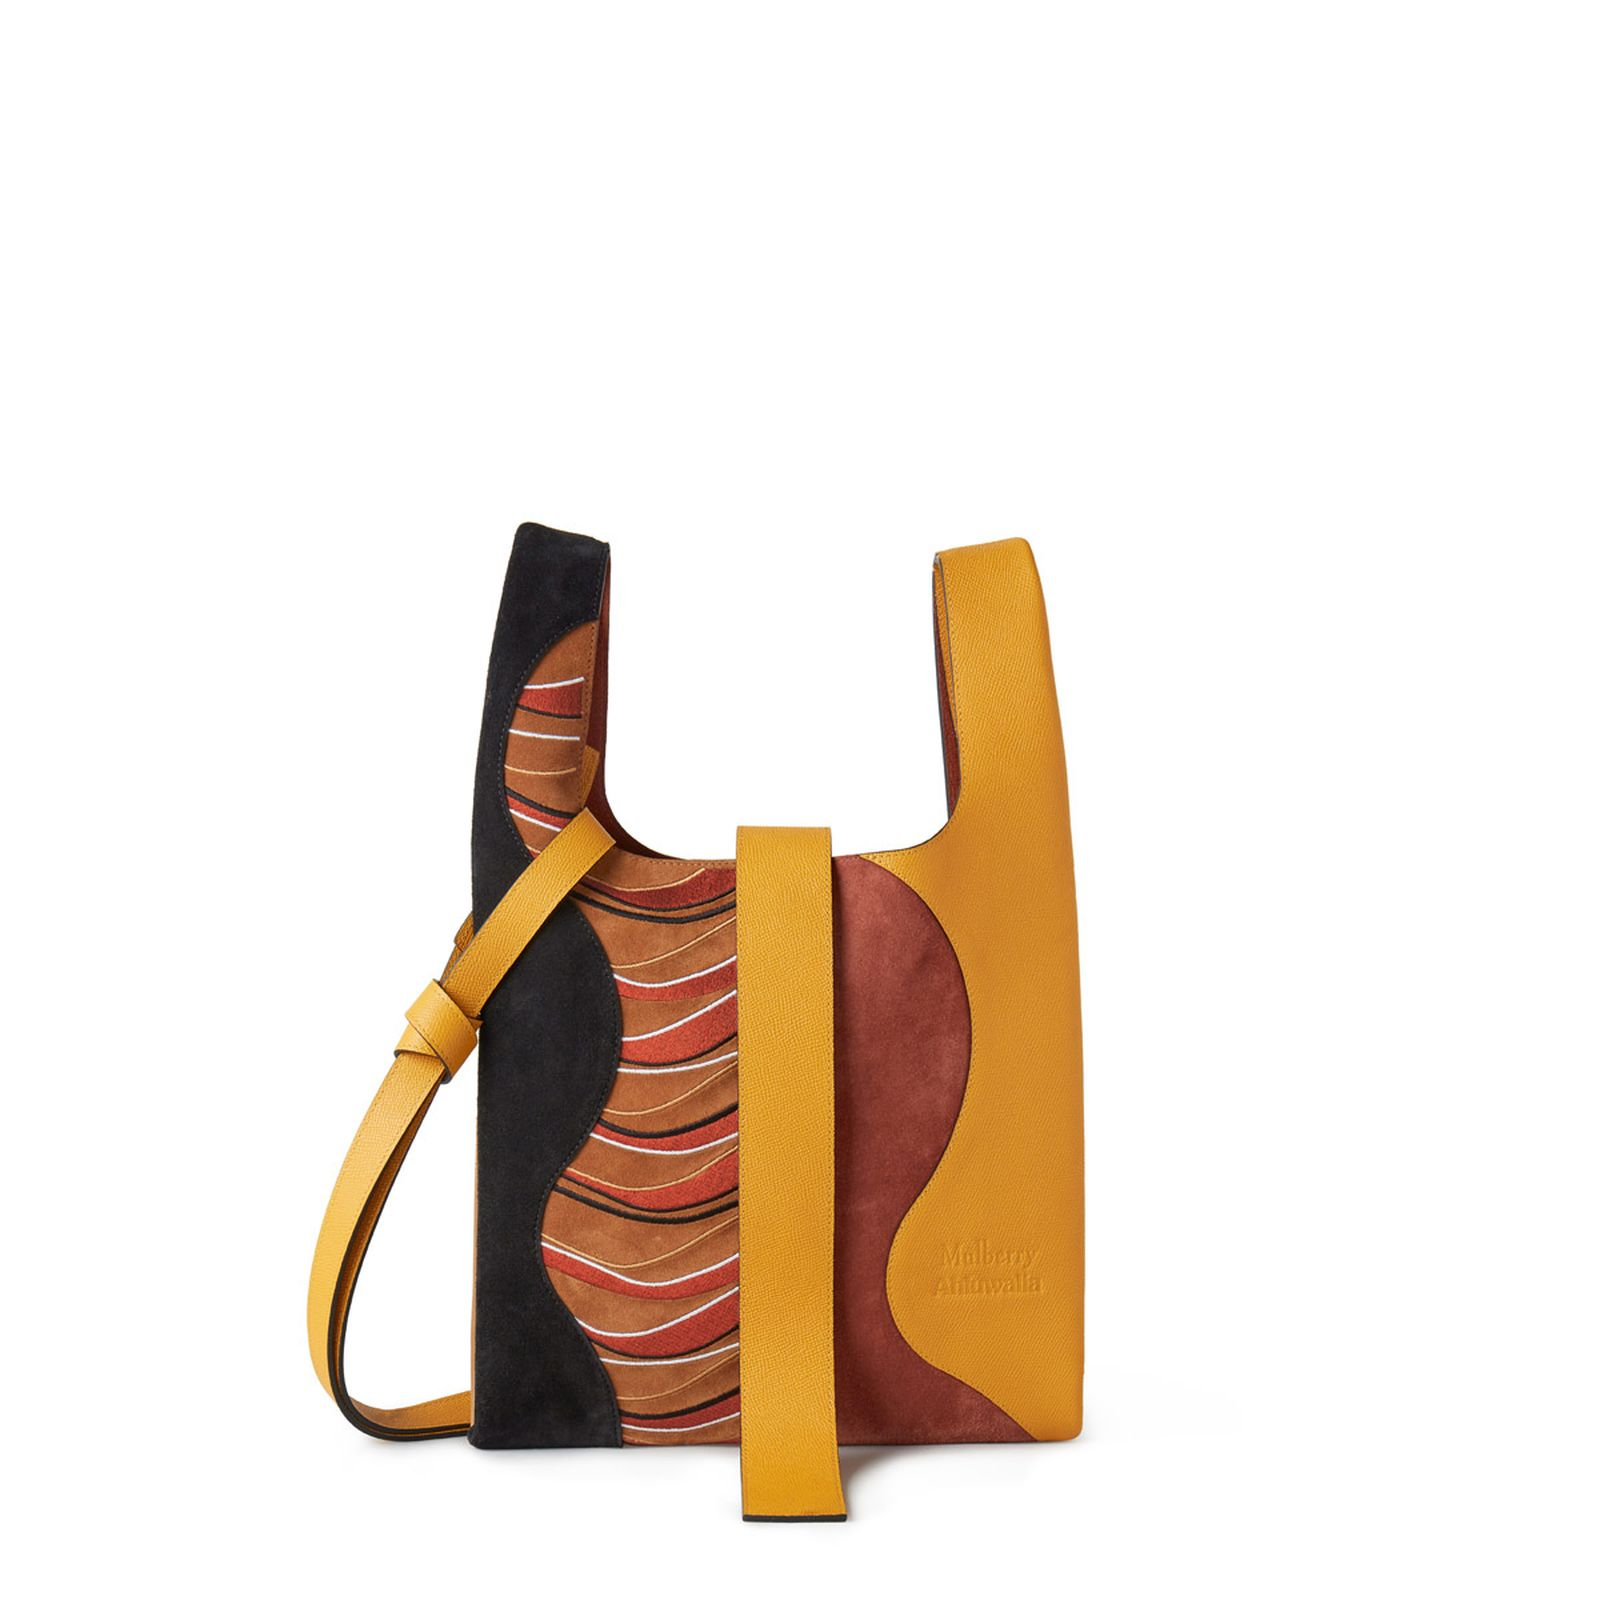 ahluwalia-mulberry-collaboration-014